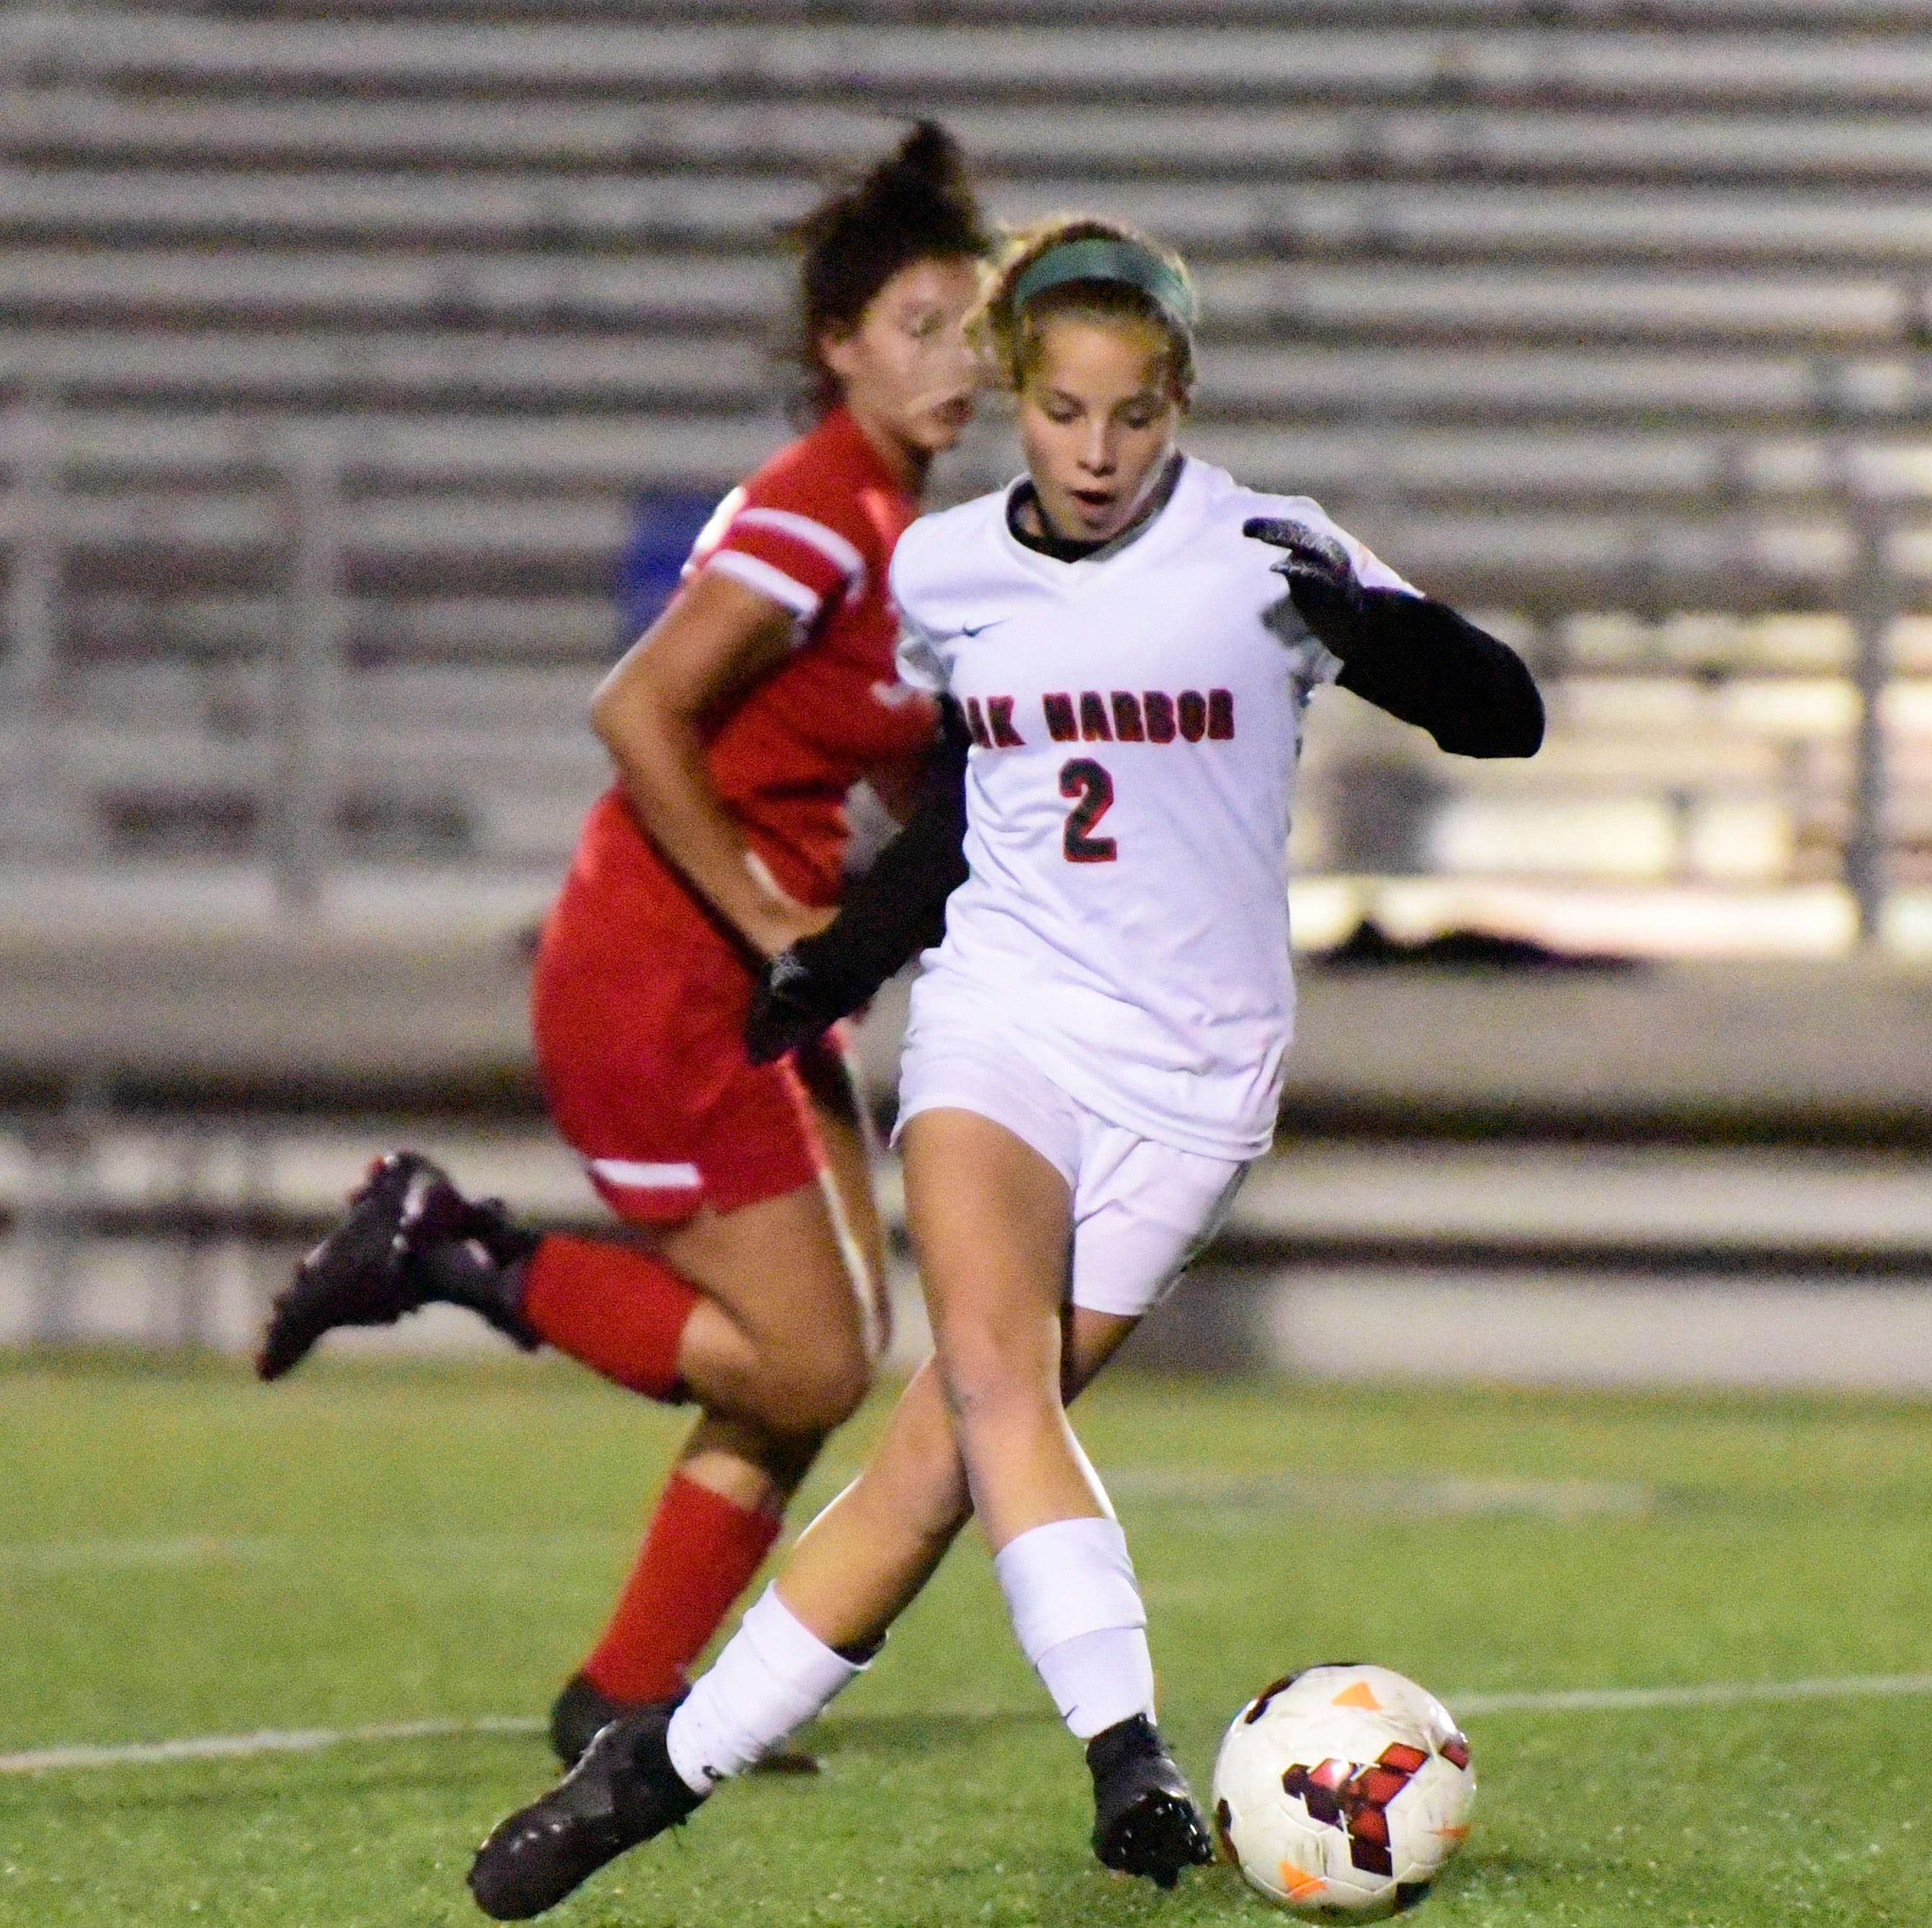 Oak Harbor girls eliminated by Central Catholic in district semifinal